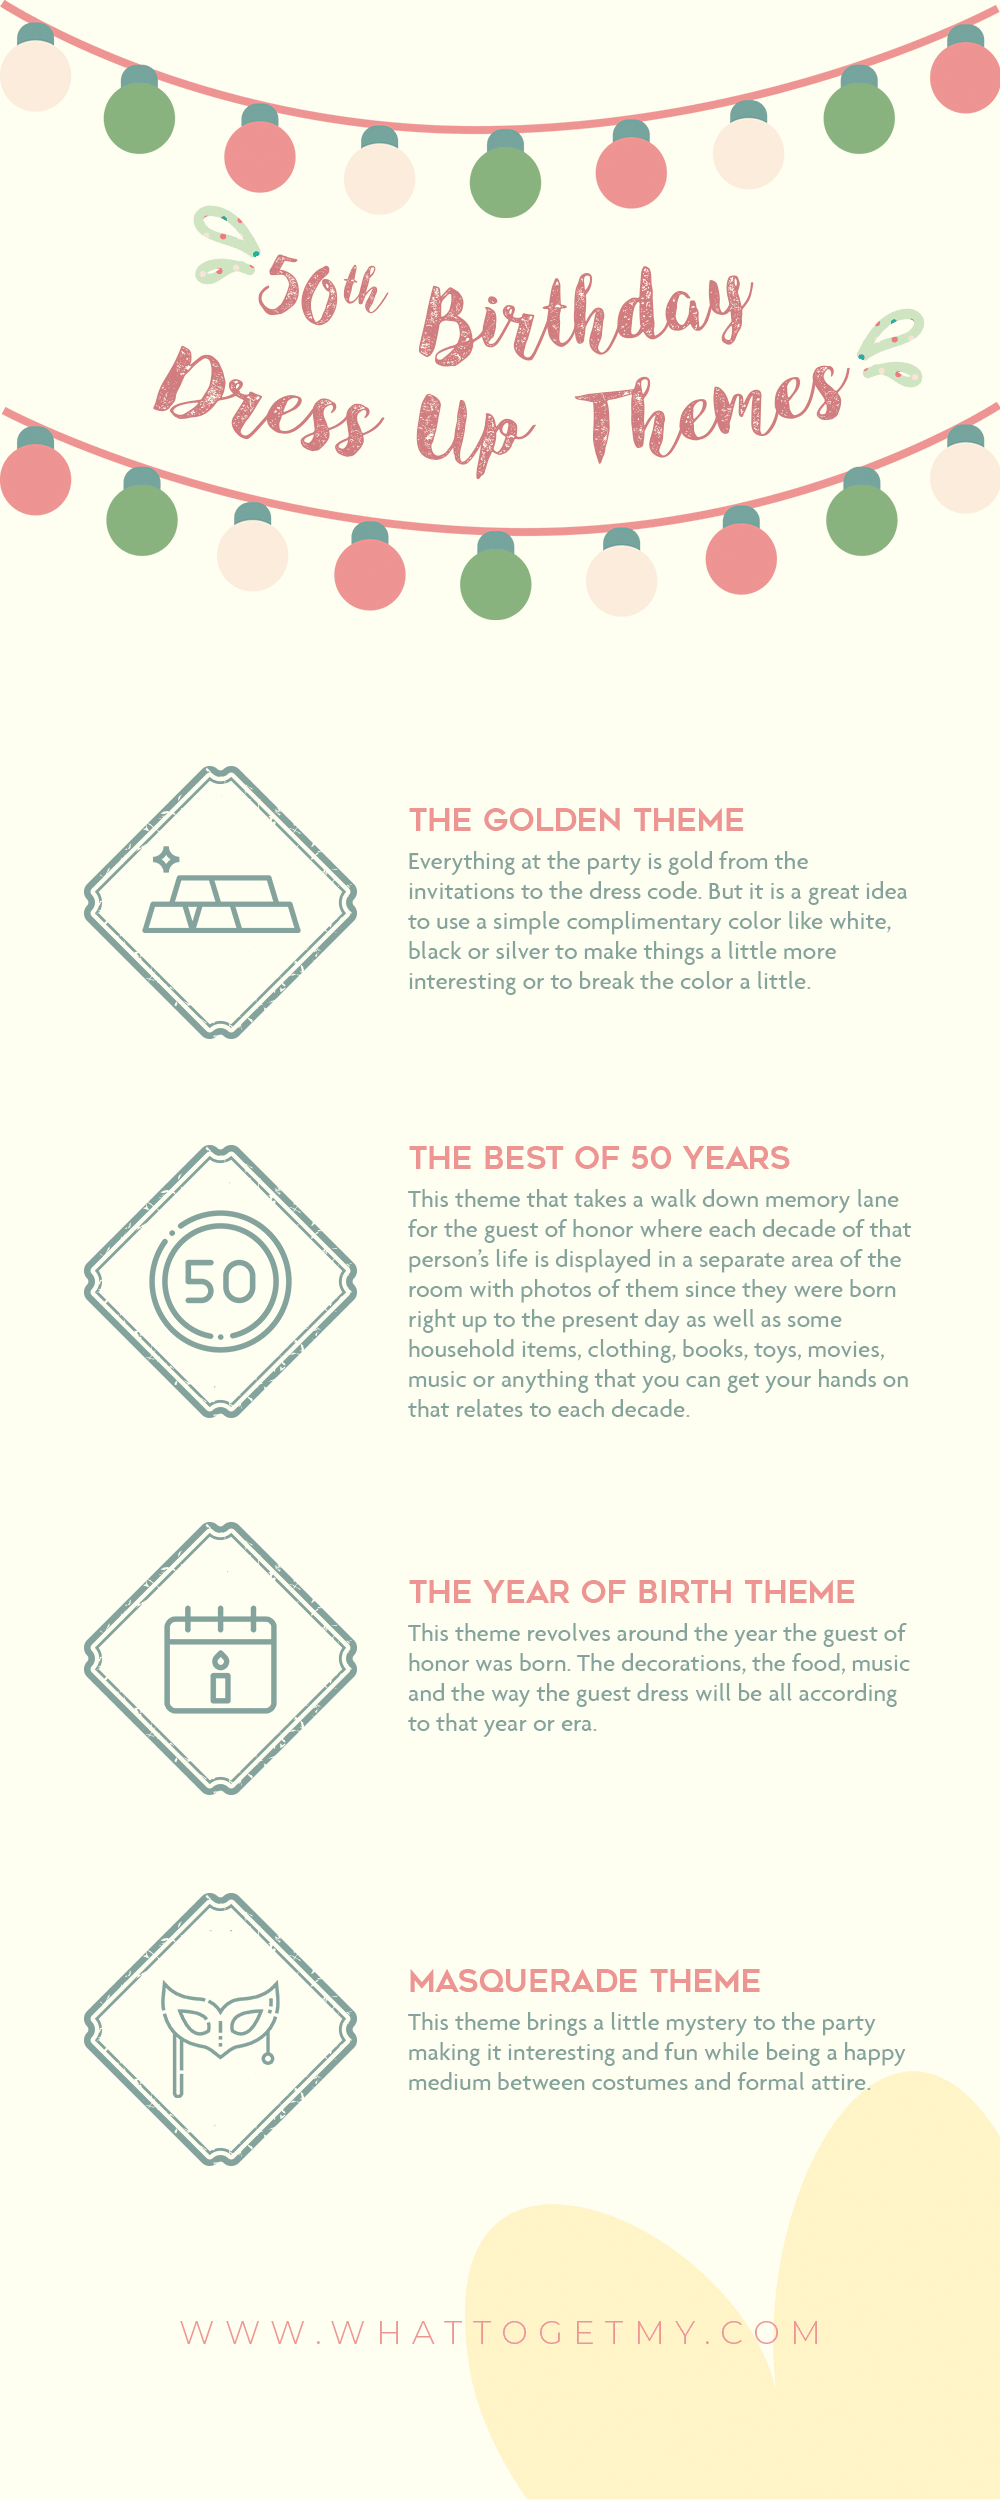 Infographic 50th Birthday Dress Up Themes